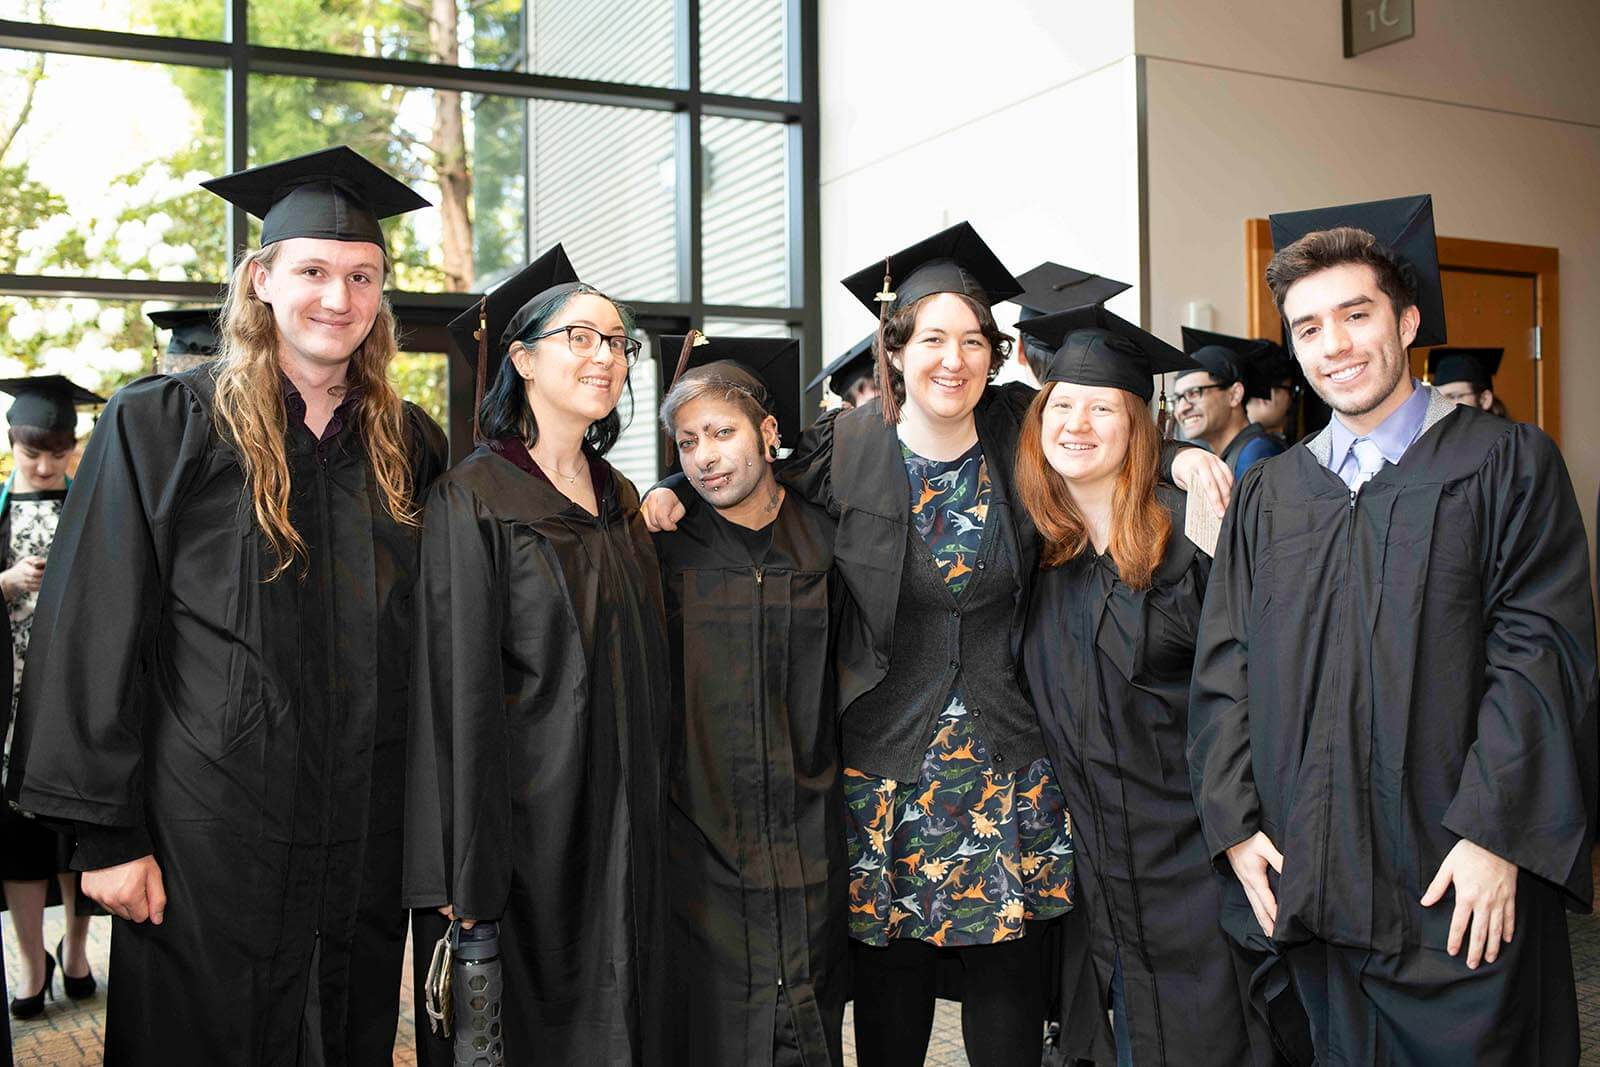 A group of graduating students in robes and mortarboards pose for a photo in a lobby area.